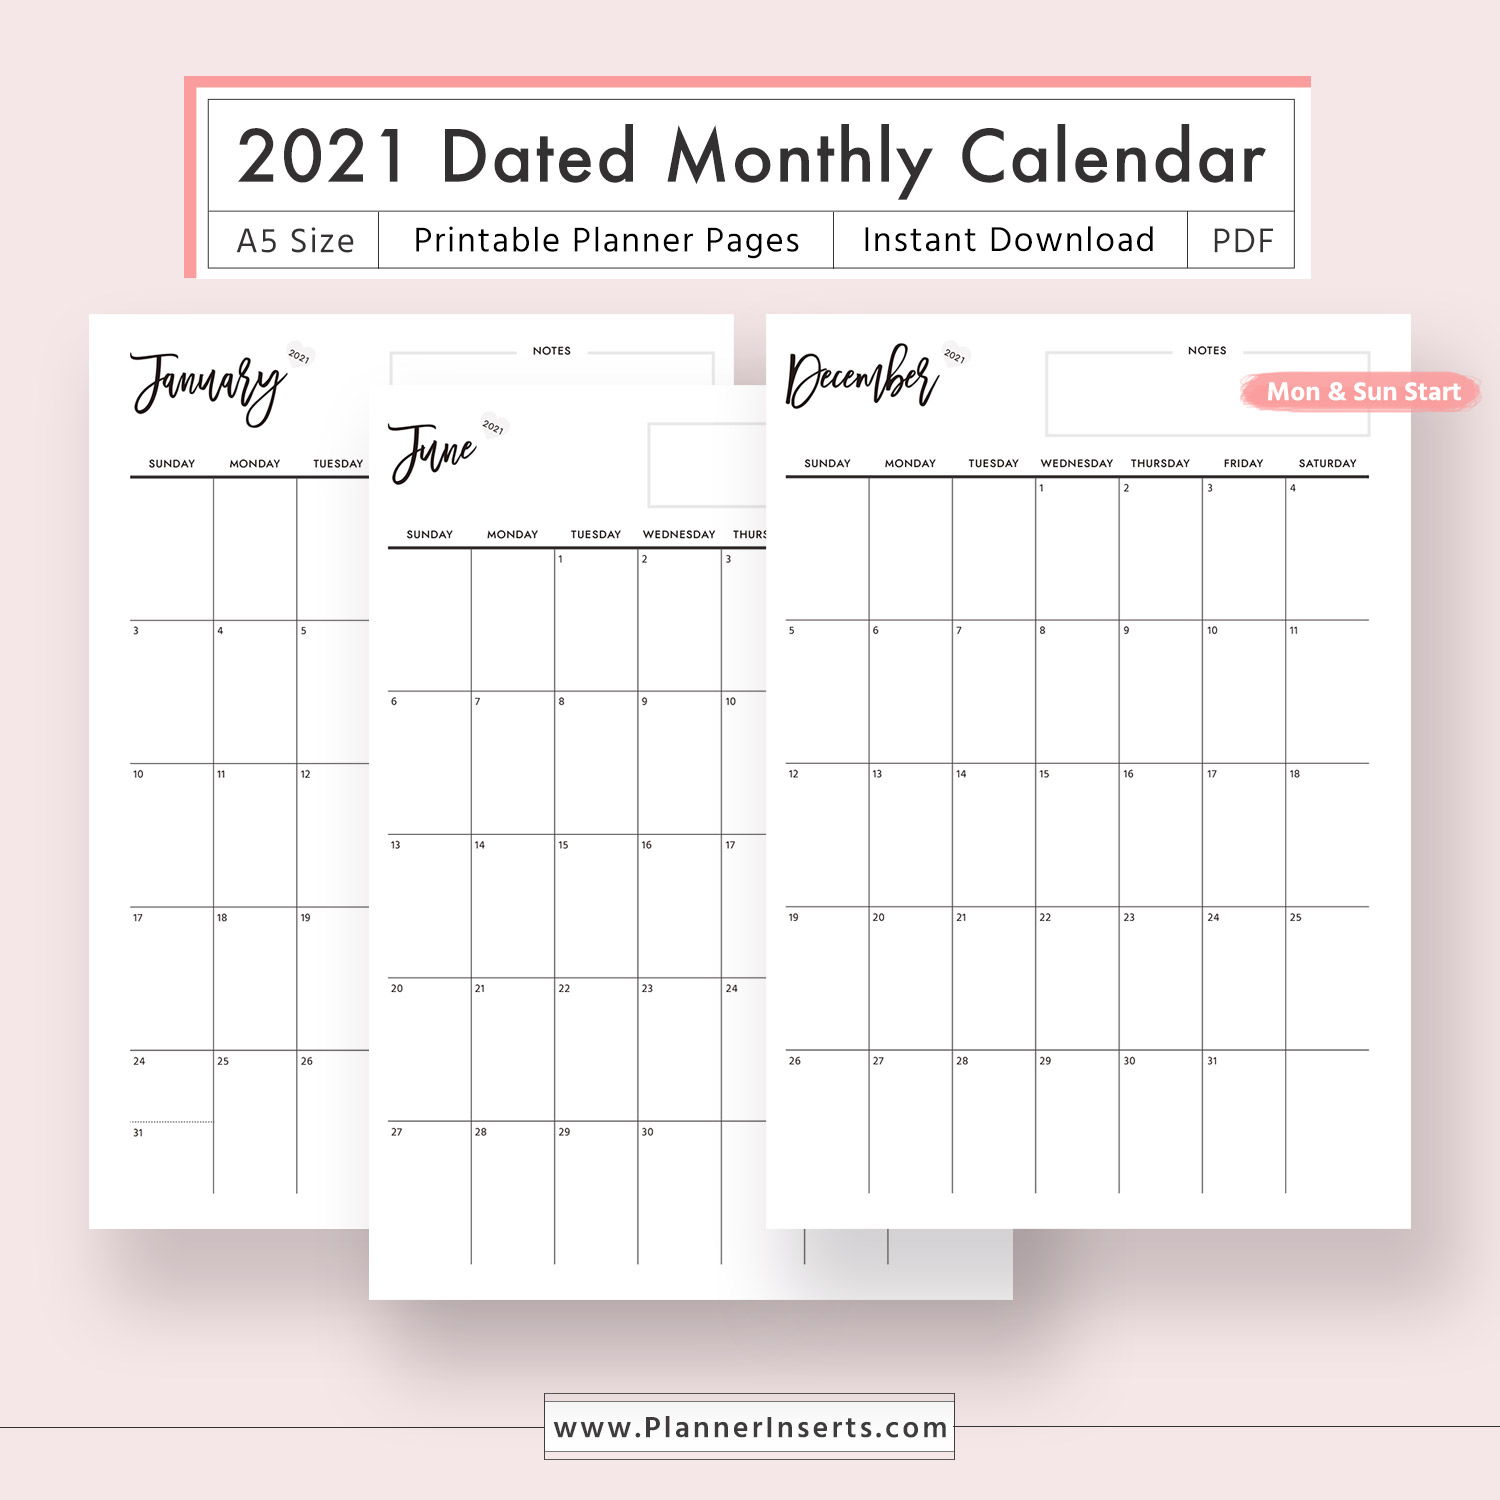 2021 Dated Monthly Calendar For Unlimited Instant Download